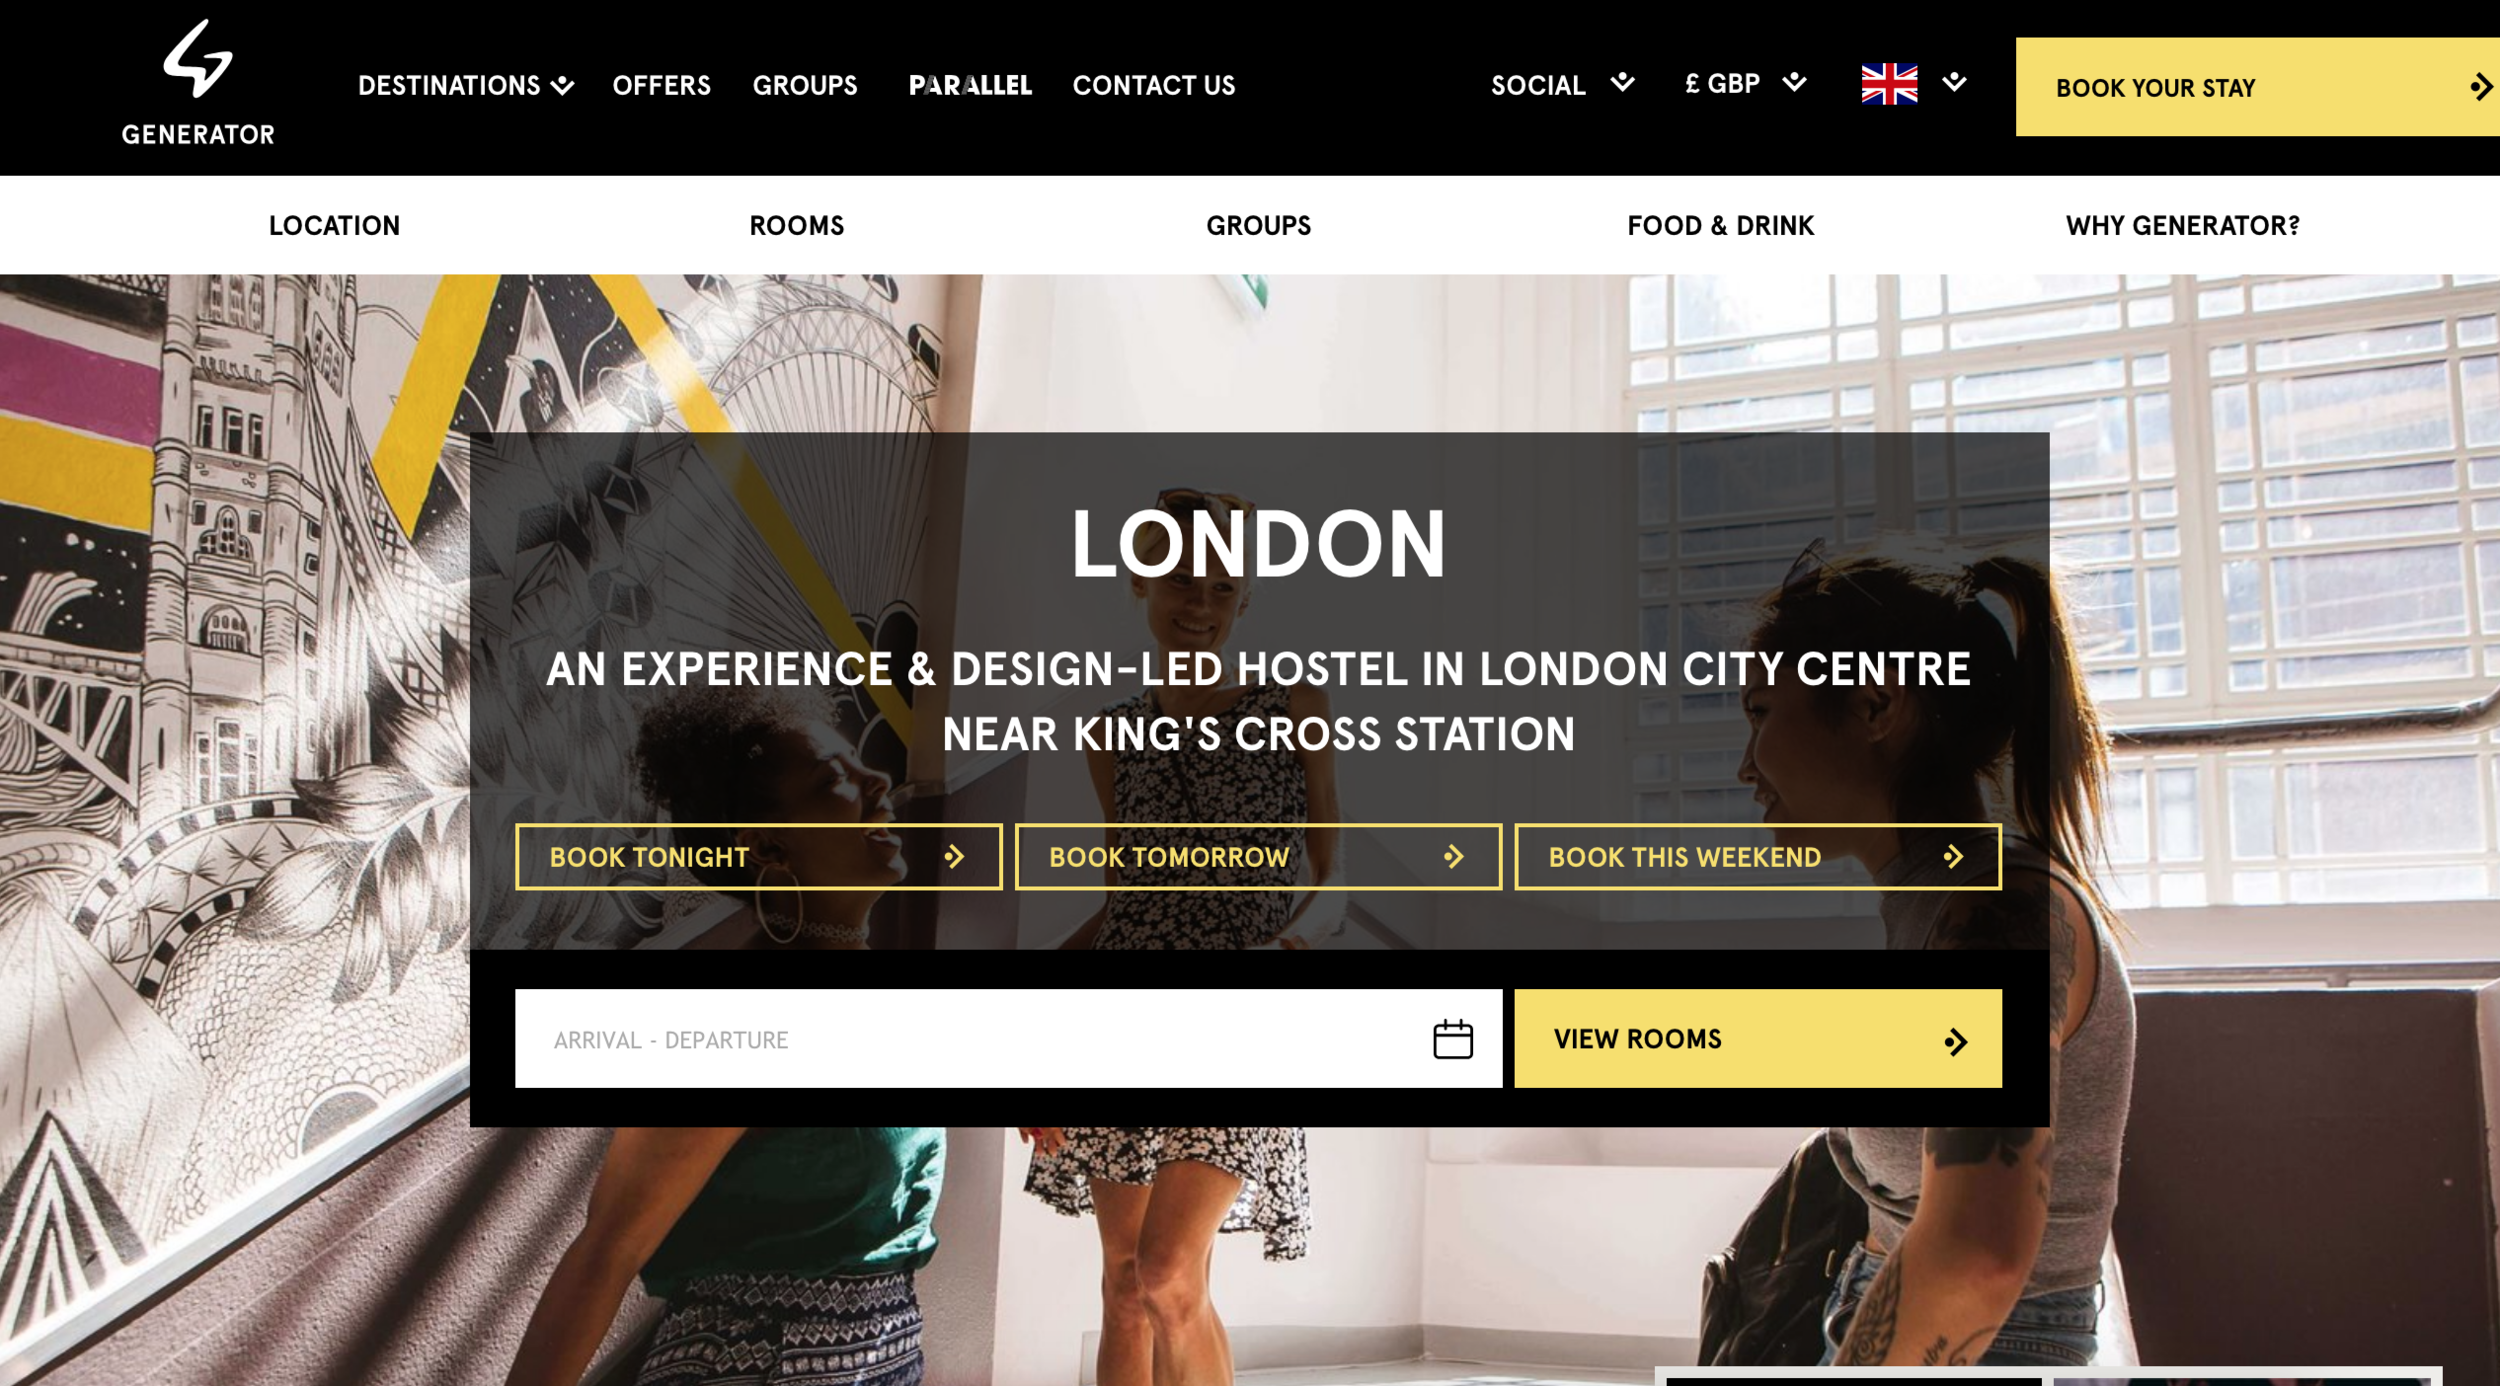 Generator Hostels in London state that for the best pice, is to book directly through them!